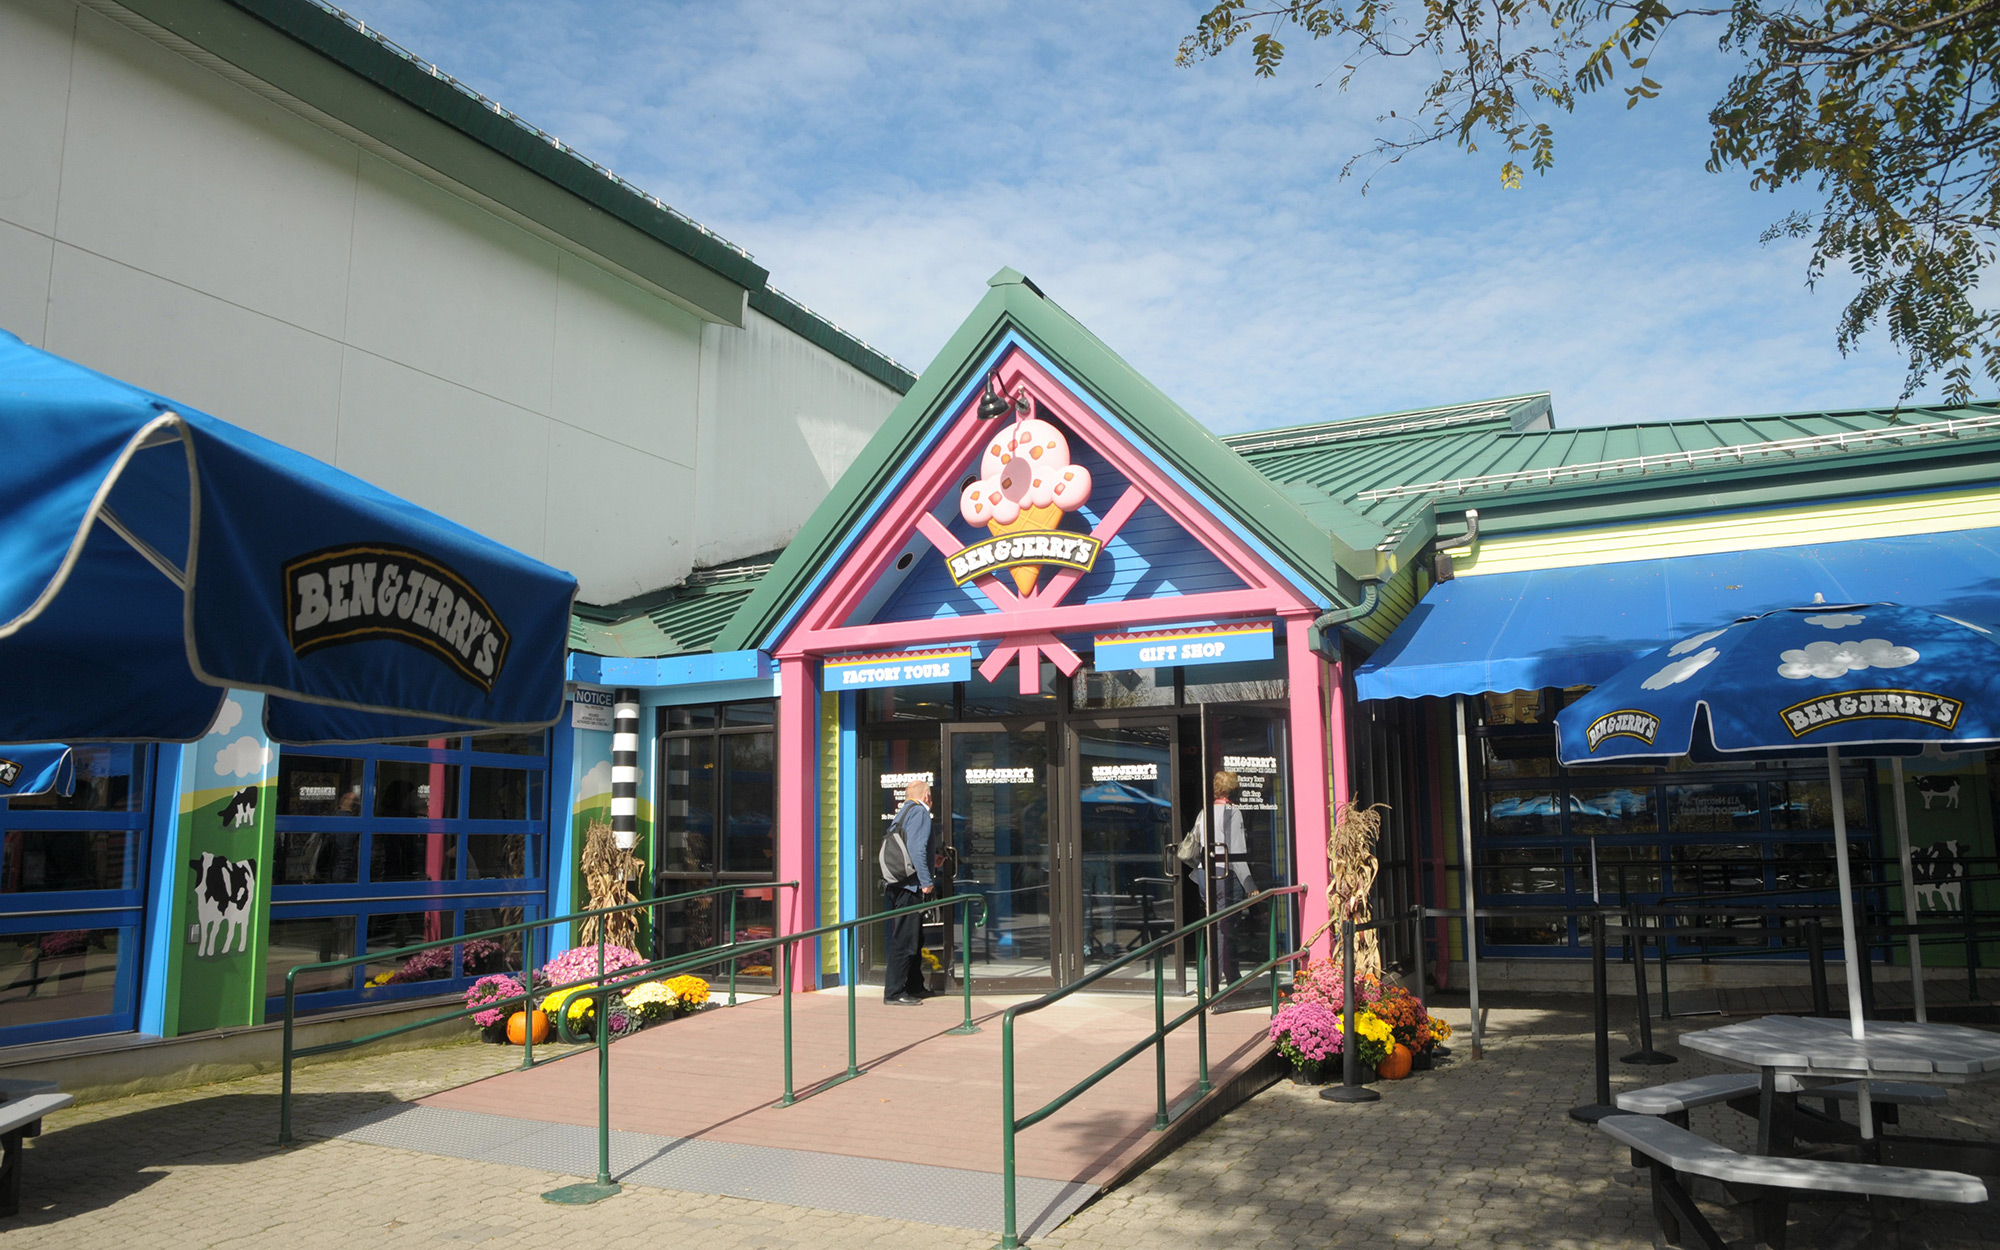 Ben and Jerrys Ice Cream Store, Waterbury, Vermont. (Photo by: Universal Images Group via Getty Images)